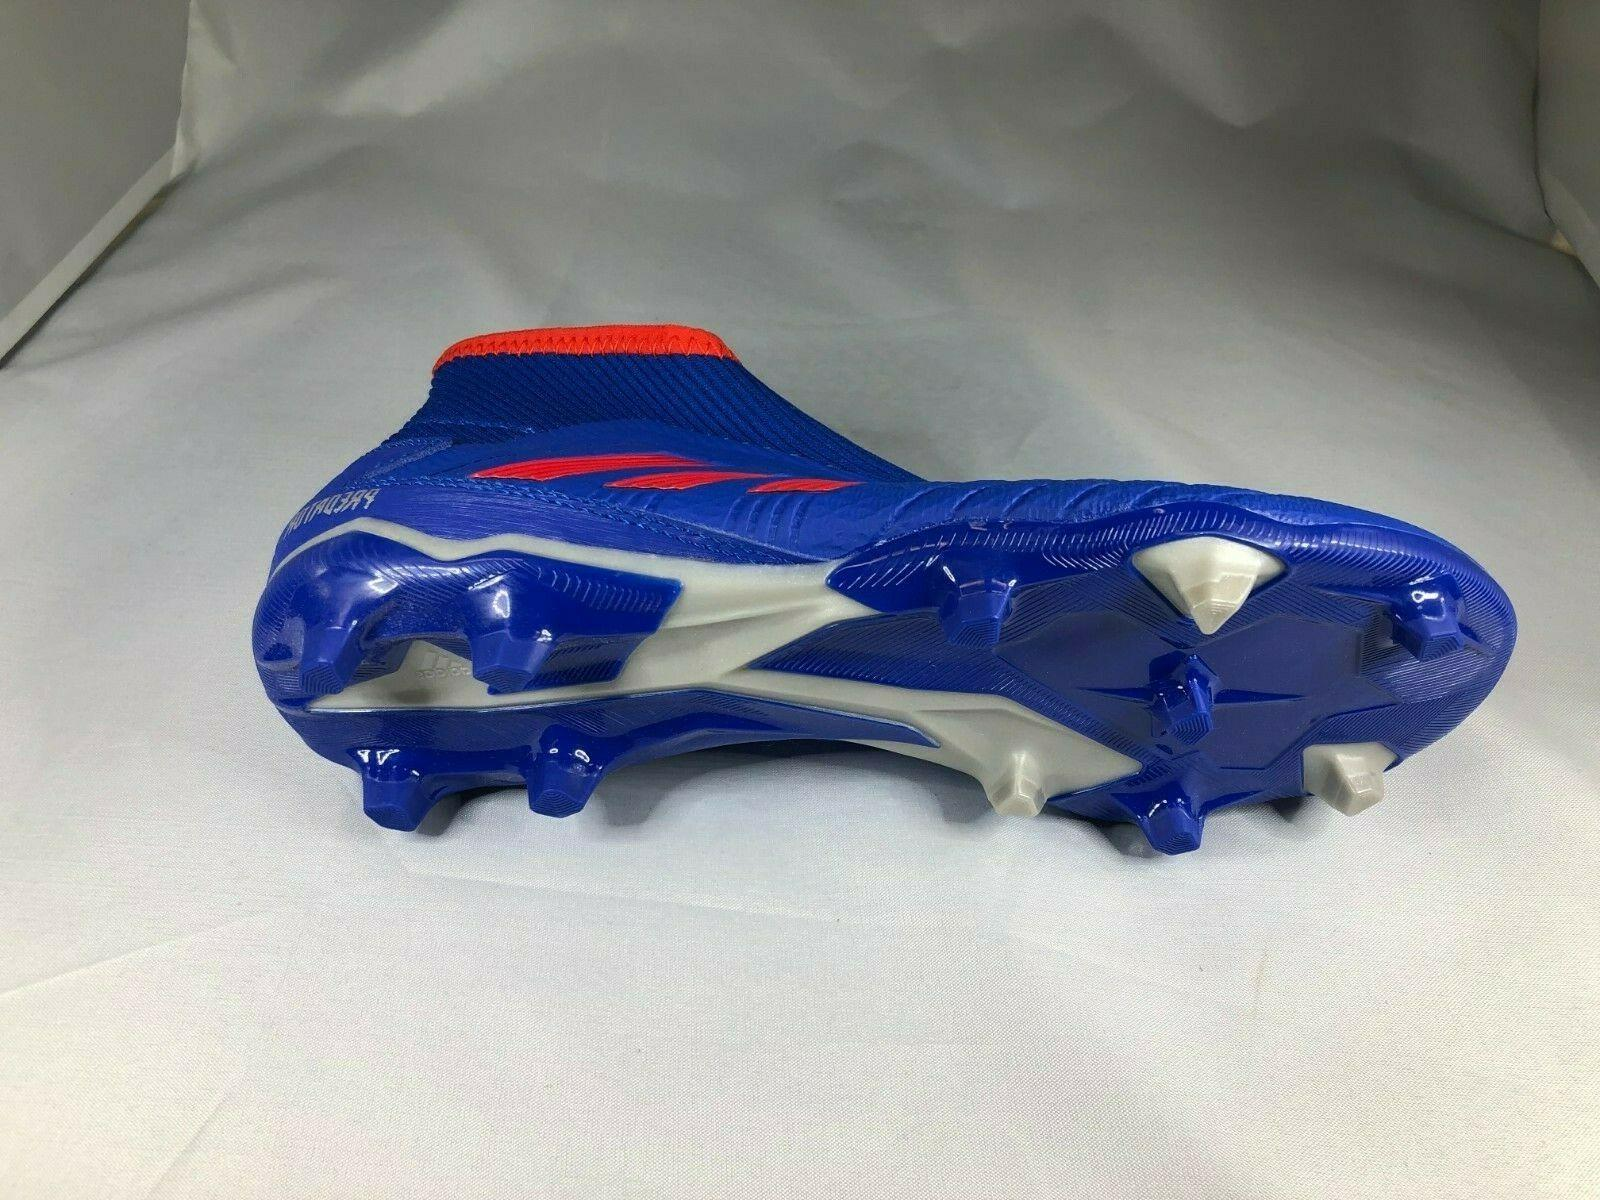 NEW 19.3 LACELESS CLEATS SIZES